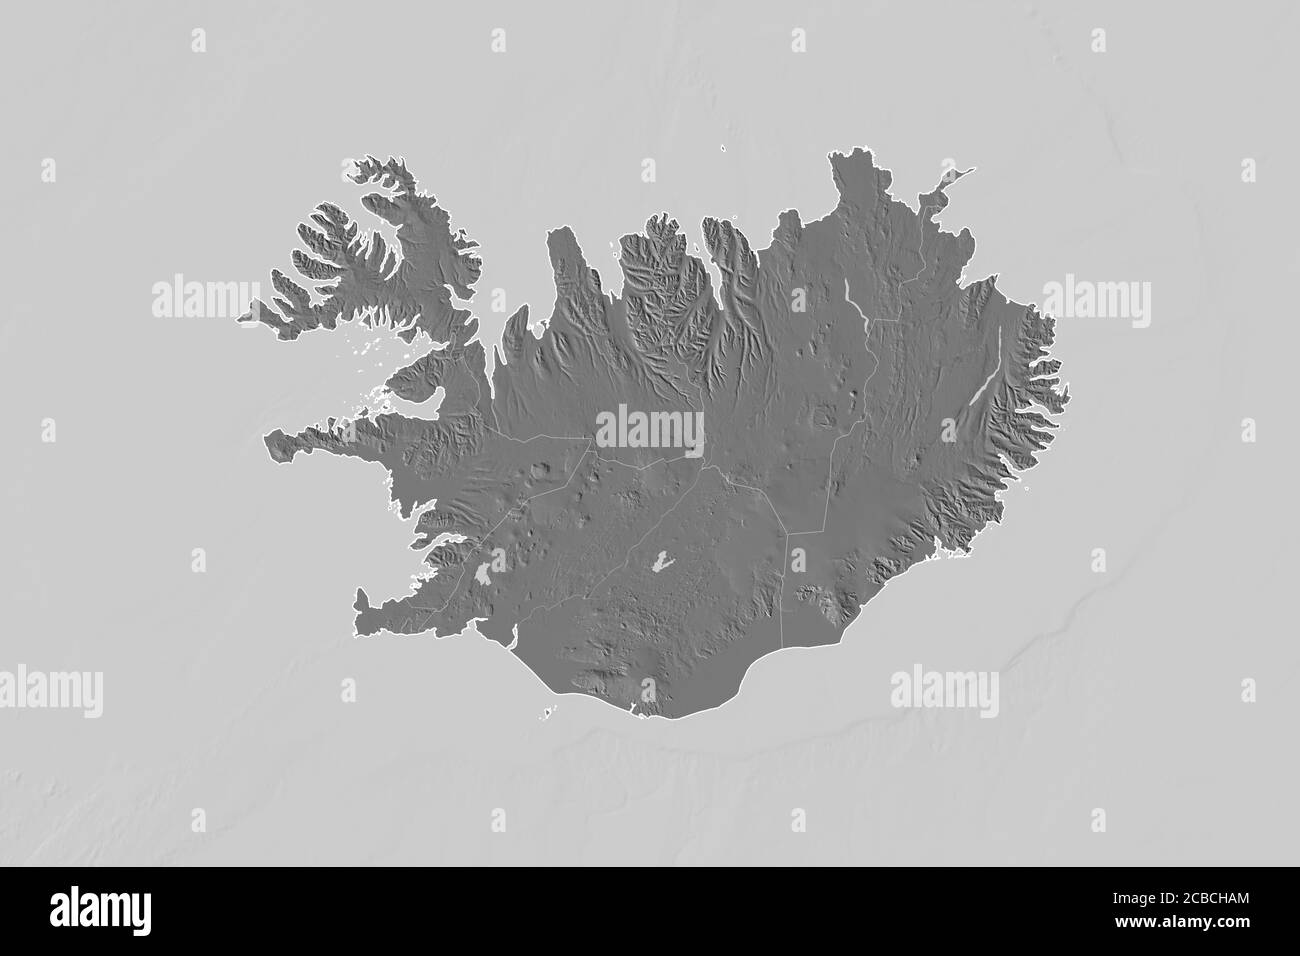 Iceland Outline Map High Resolution Stock Photography And Images Alamy